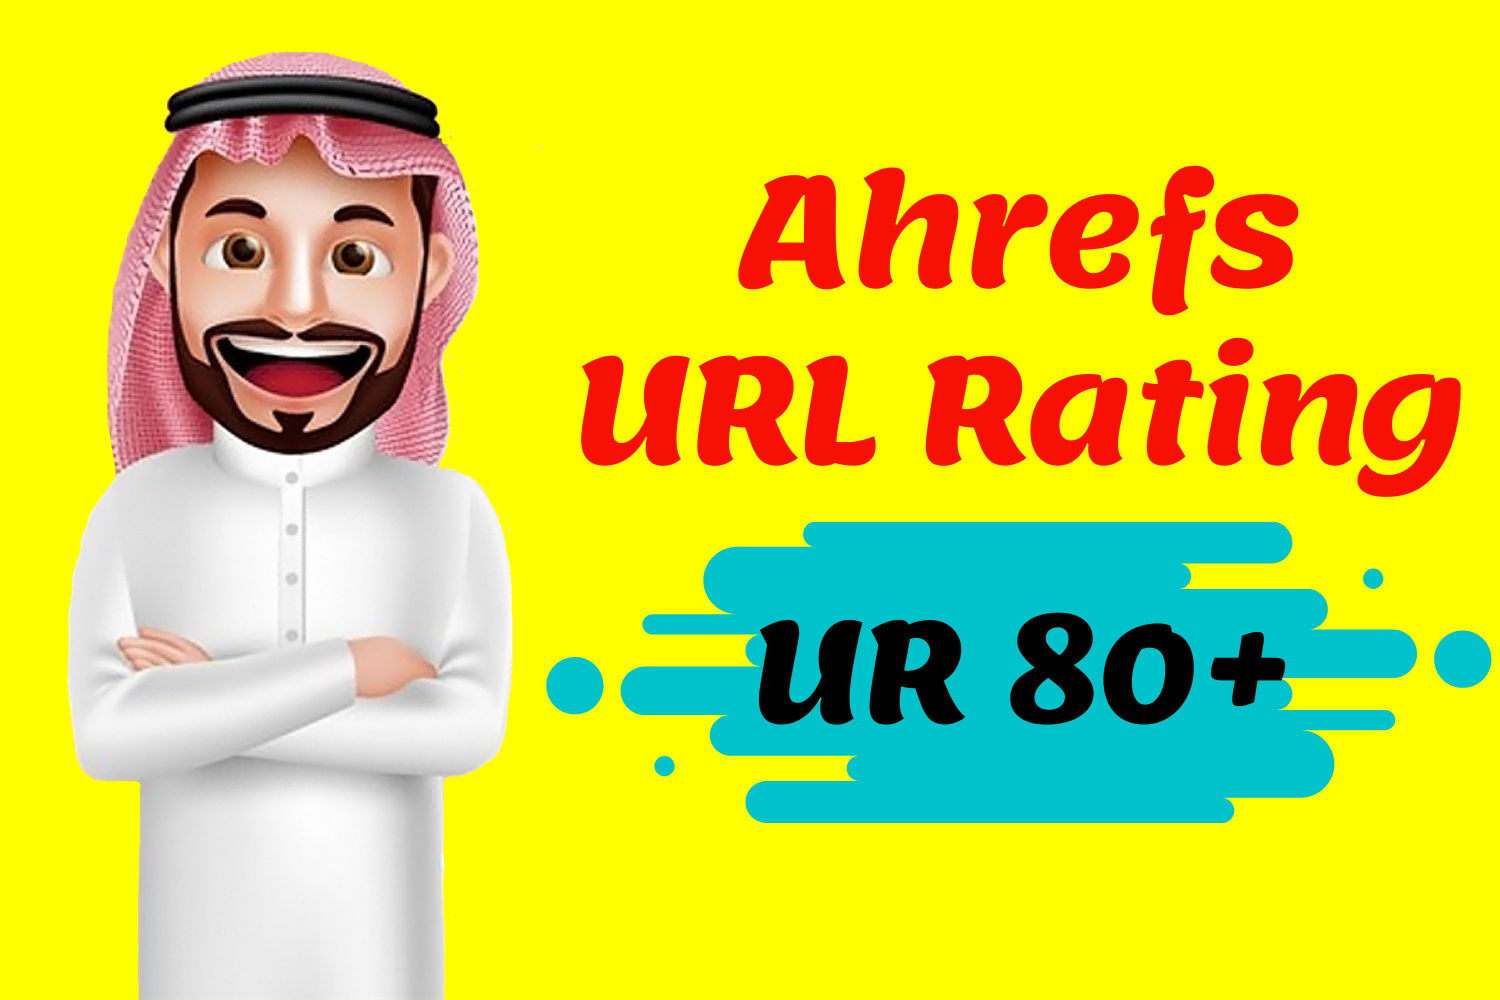 I Will Increase Ahrefs URL Rating 80 Plus